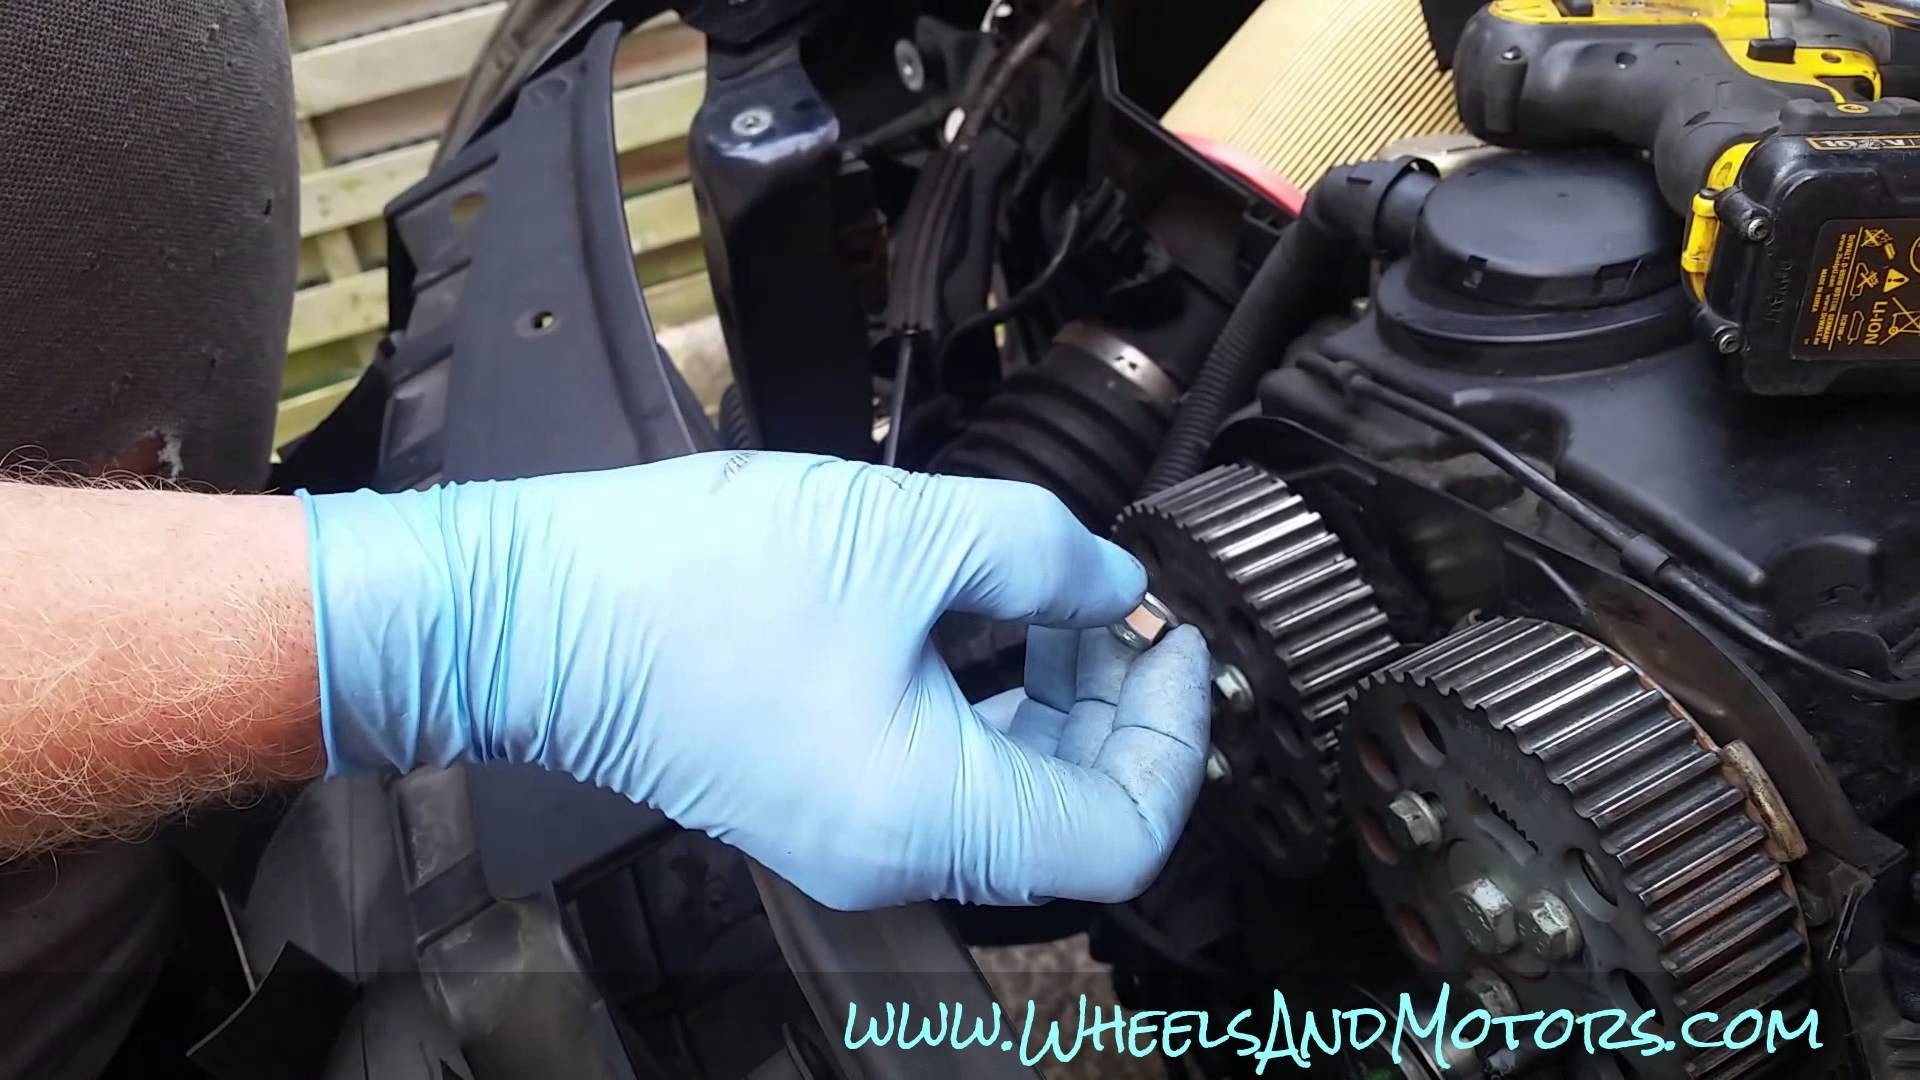 2007 Audi A4 Engine Diagram How to Replace Timing Belt Cambelt and Water Pump On 2 0 Tdi Of 2007 Audi A4 Engine Diagram